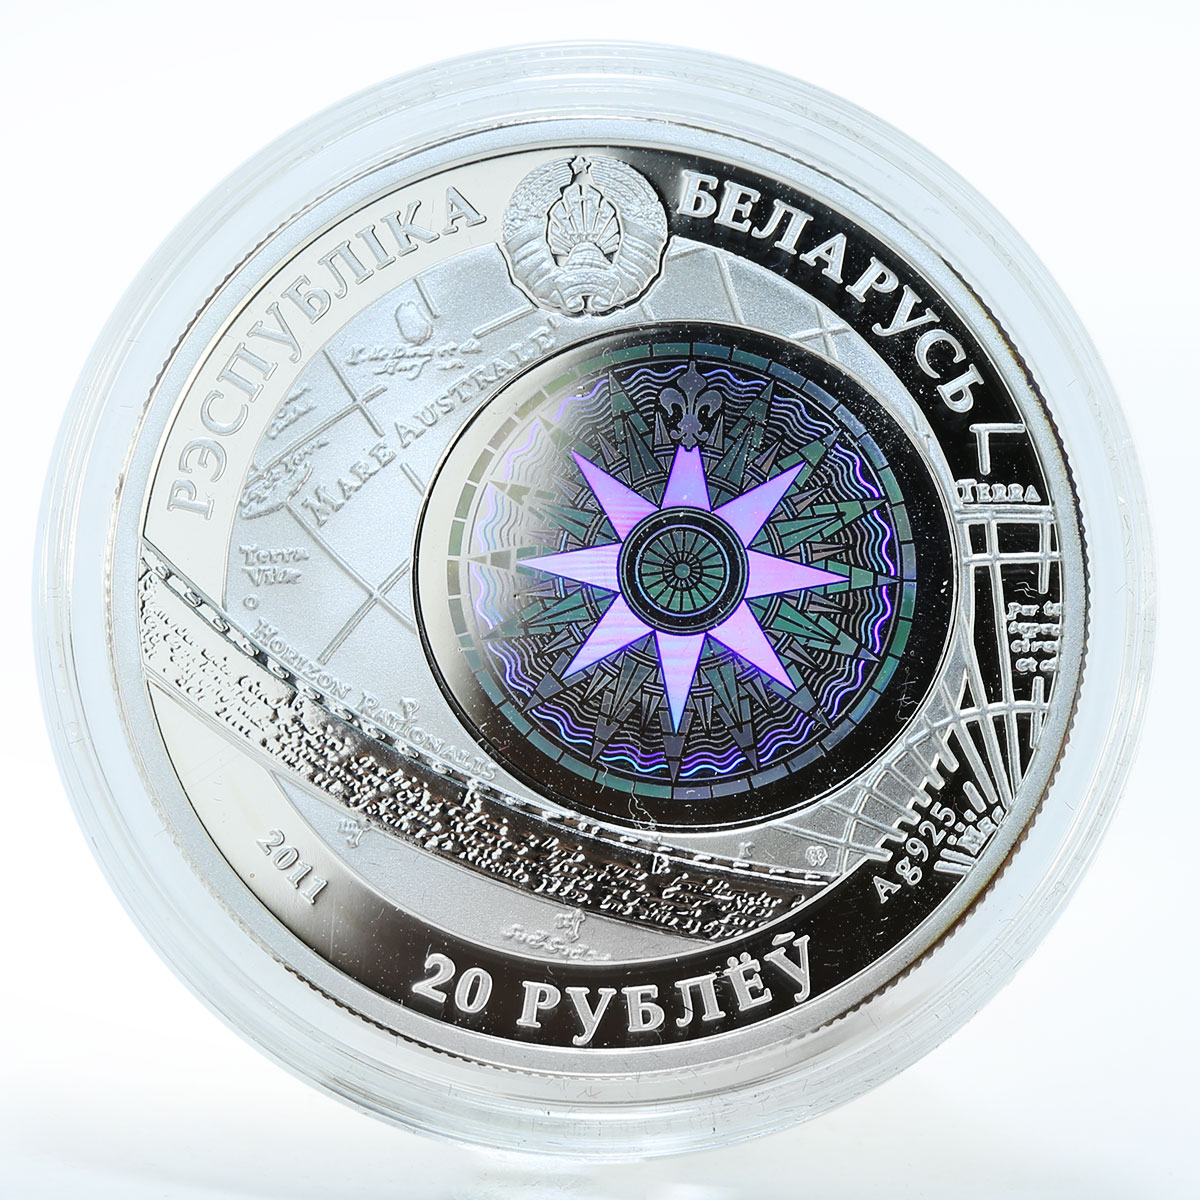 Belarus 20 roubles Cutty Sark Sailing Ships hologram silver coin 2011